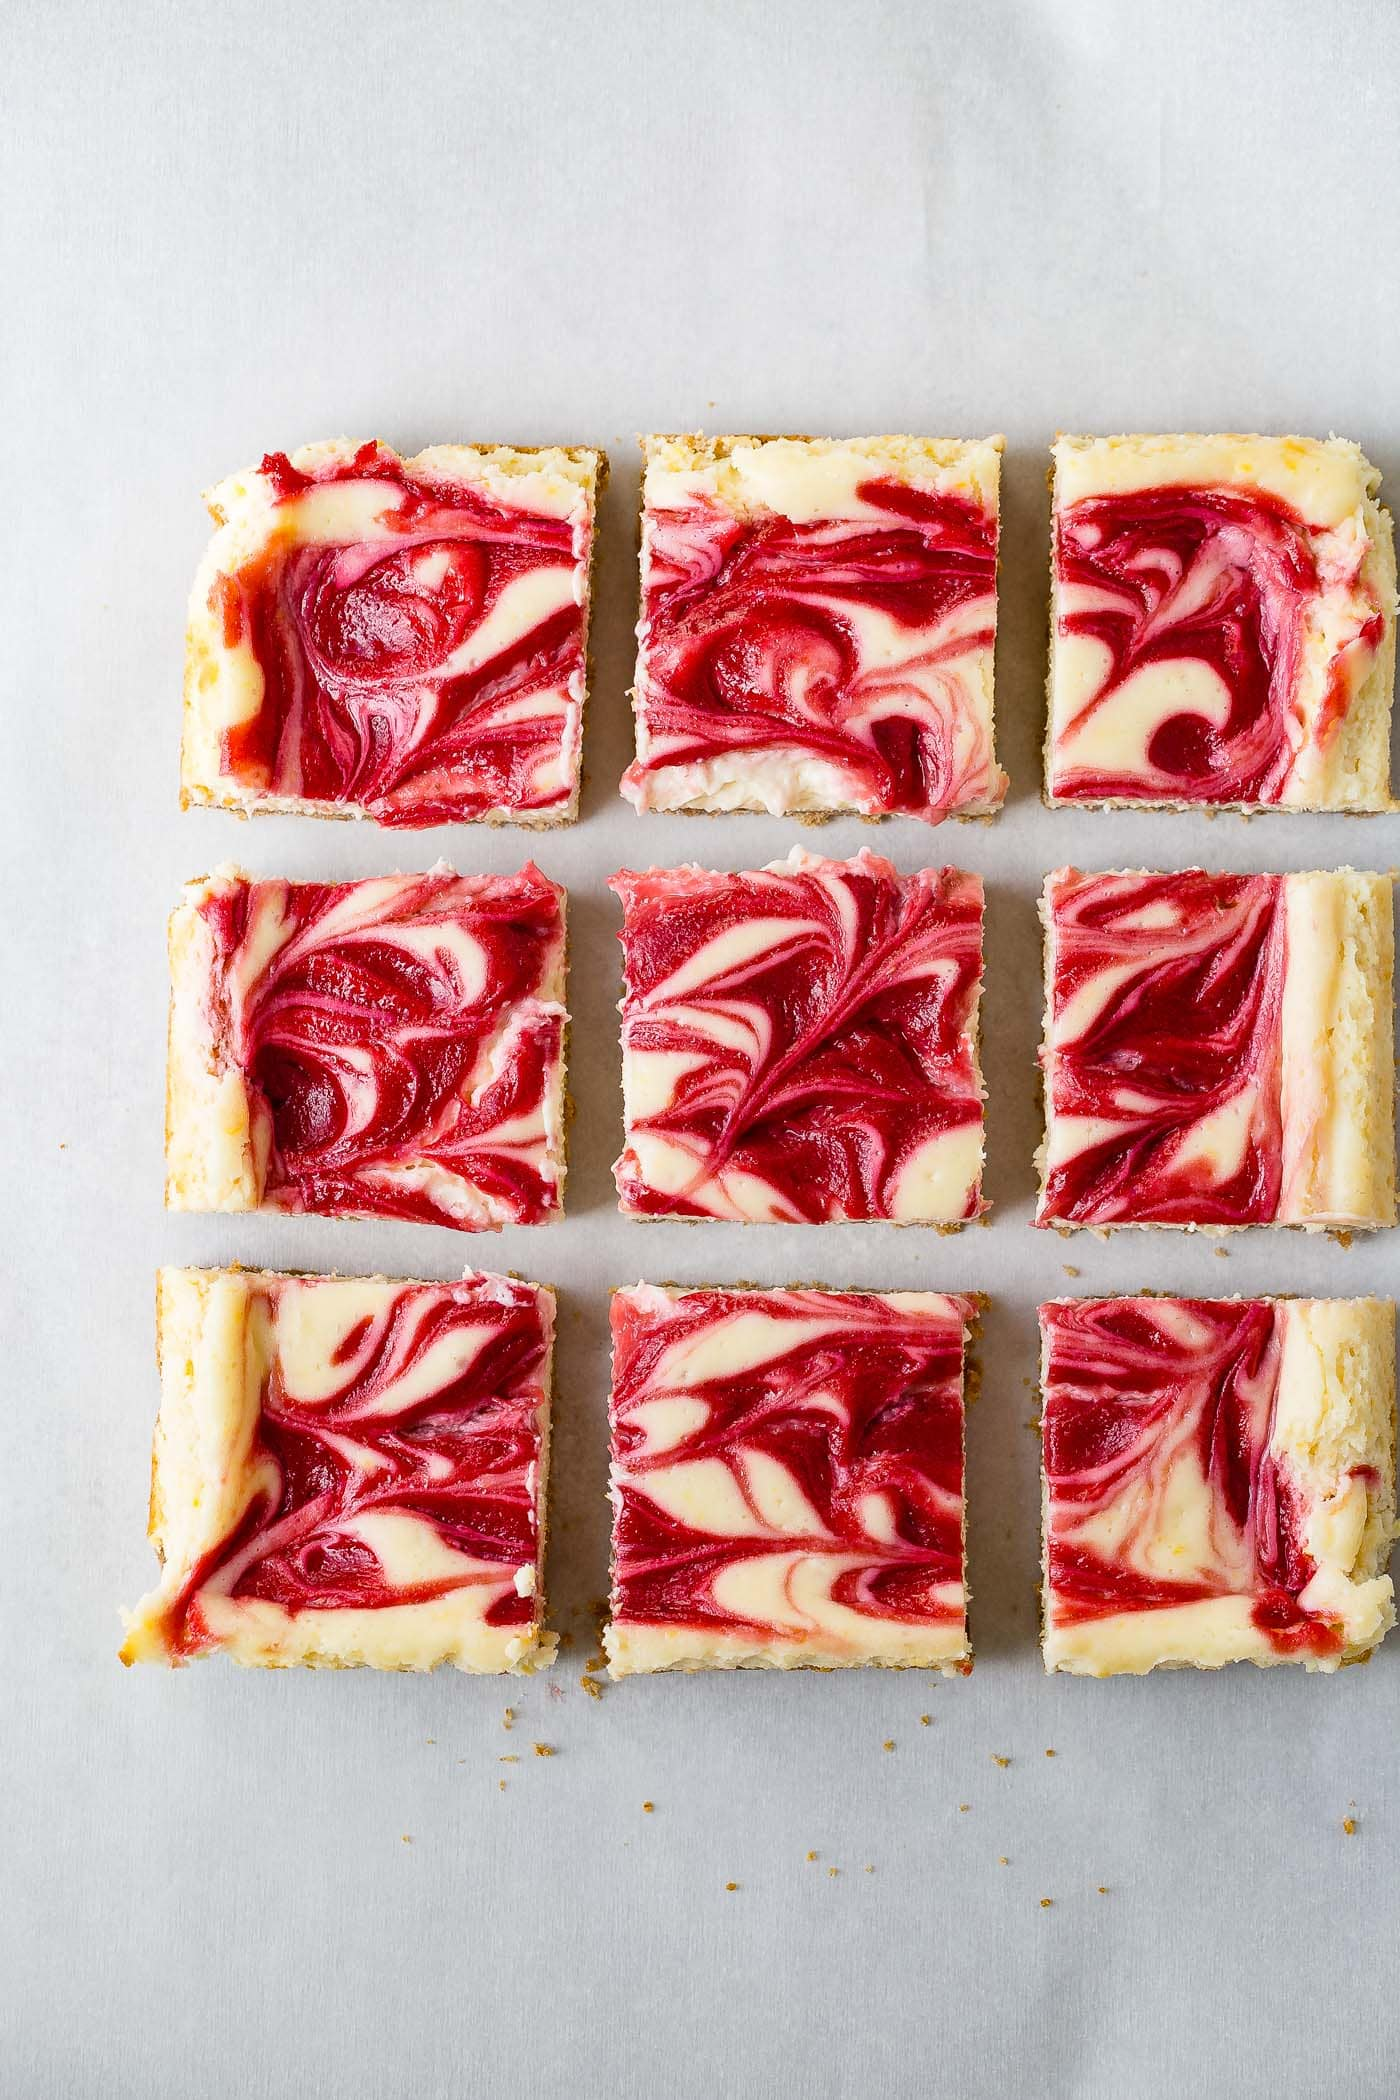 Nine cut squares of swirled raspberry lemon cheesecake bars. They have a golden crust and lemon cheesecake filling with raspberry sauce swirled on top.